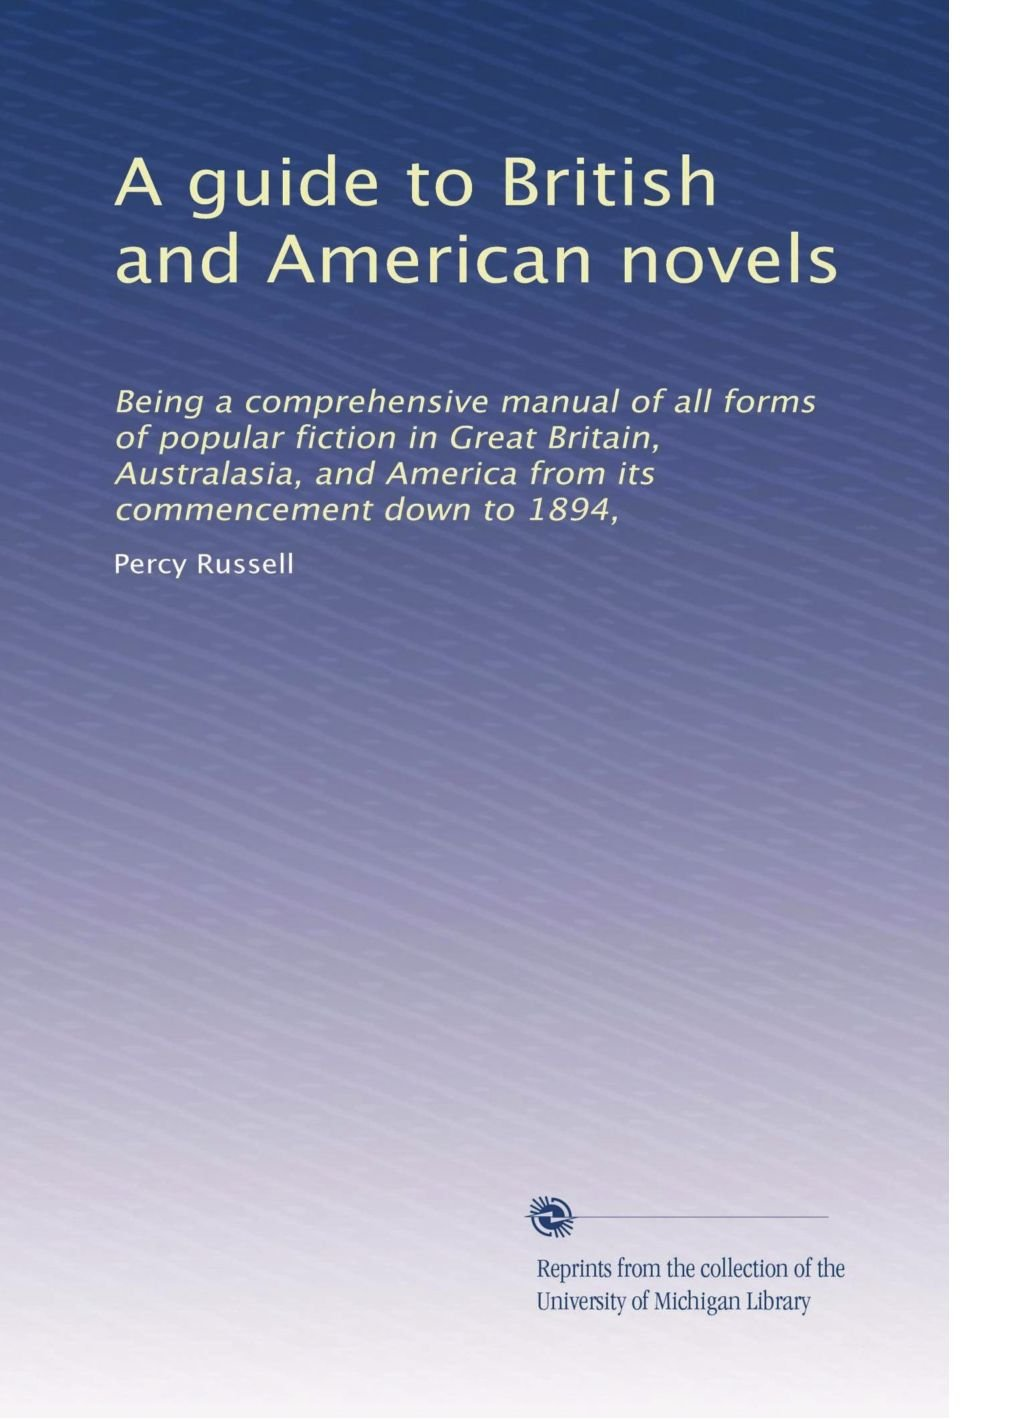 Download A guide to British and American novels: Being a comprehensive manual of all forms of popular fiction in Great Britain, Australasia, and America from its commencement down to 1894, PDF